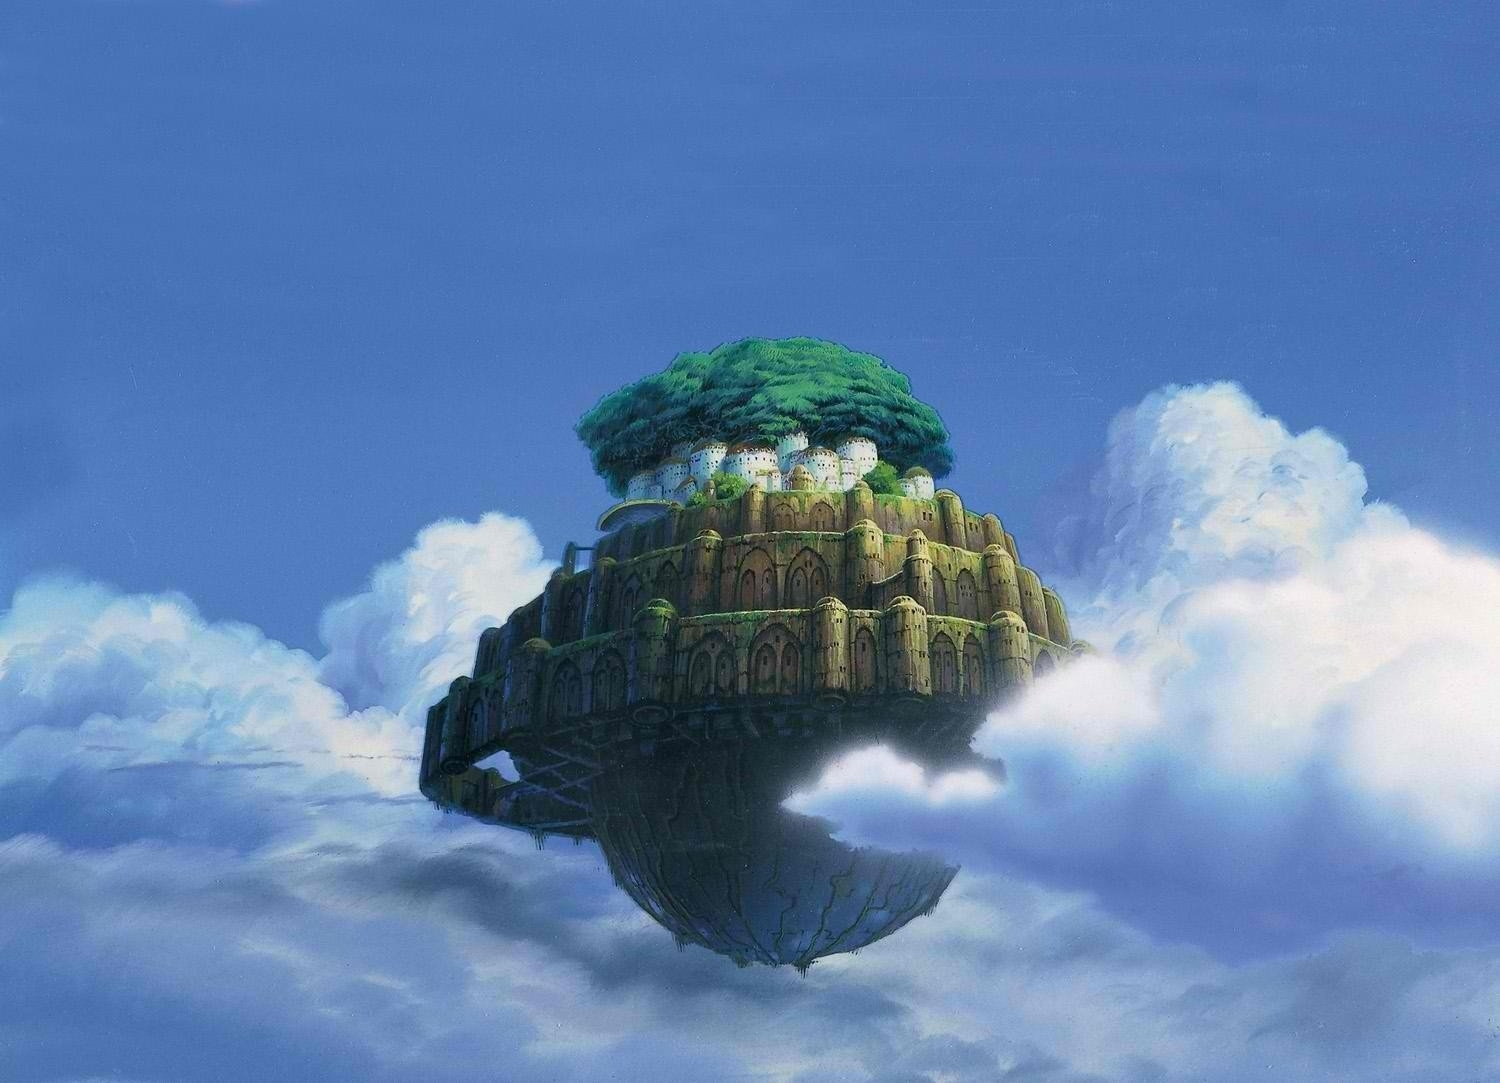 92 laputa: castle in the sky hd wallpapers | background images